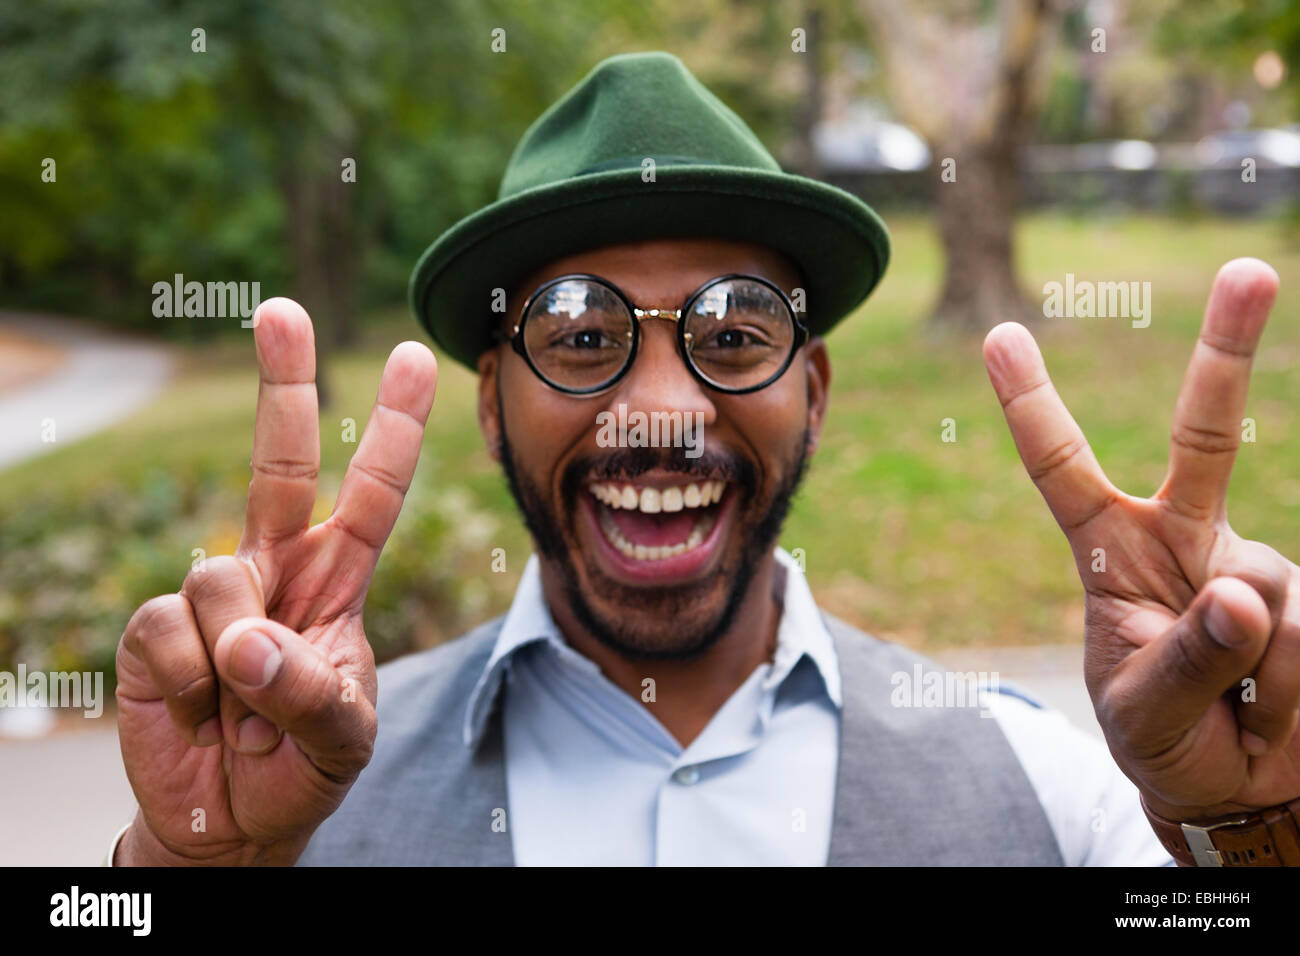 Man making peace sign smiling widely in park - Stock Image